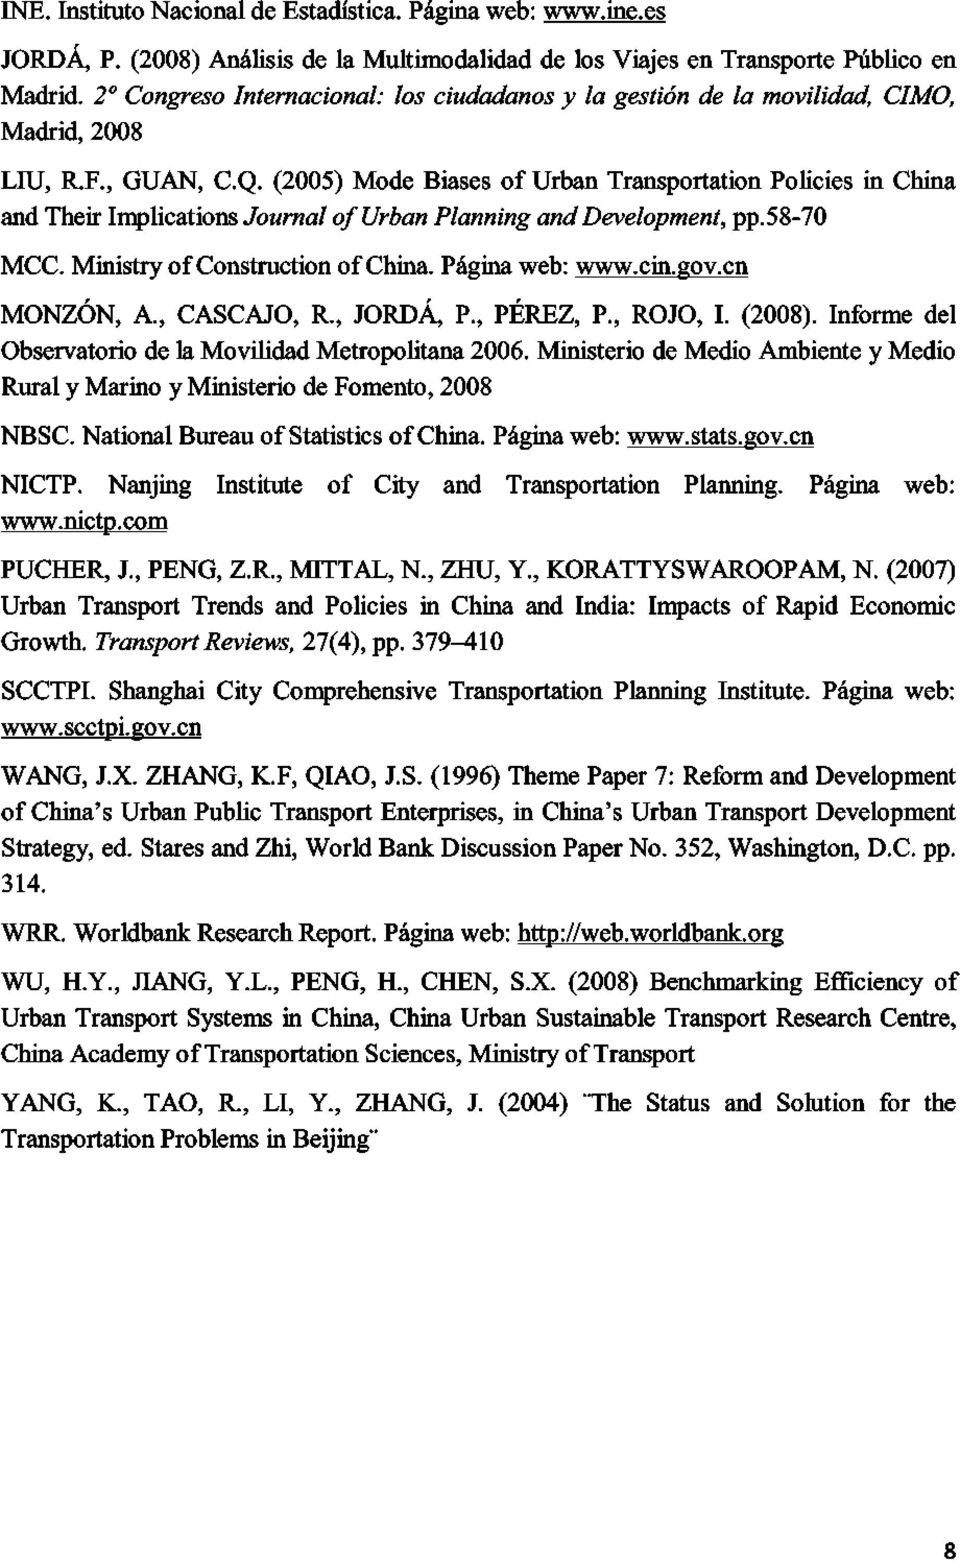 (2005) Mode Biases of Urban Transportation Policies in China and Their Implications Journal of Urban Planning and Development, pp.58-70 MCC. Ministry of Construction of China. Página web: www.cin.gov.